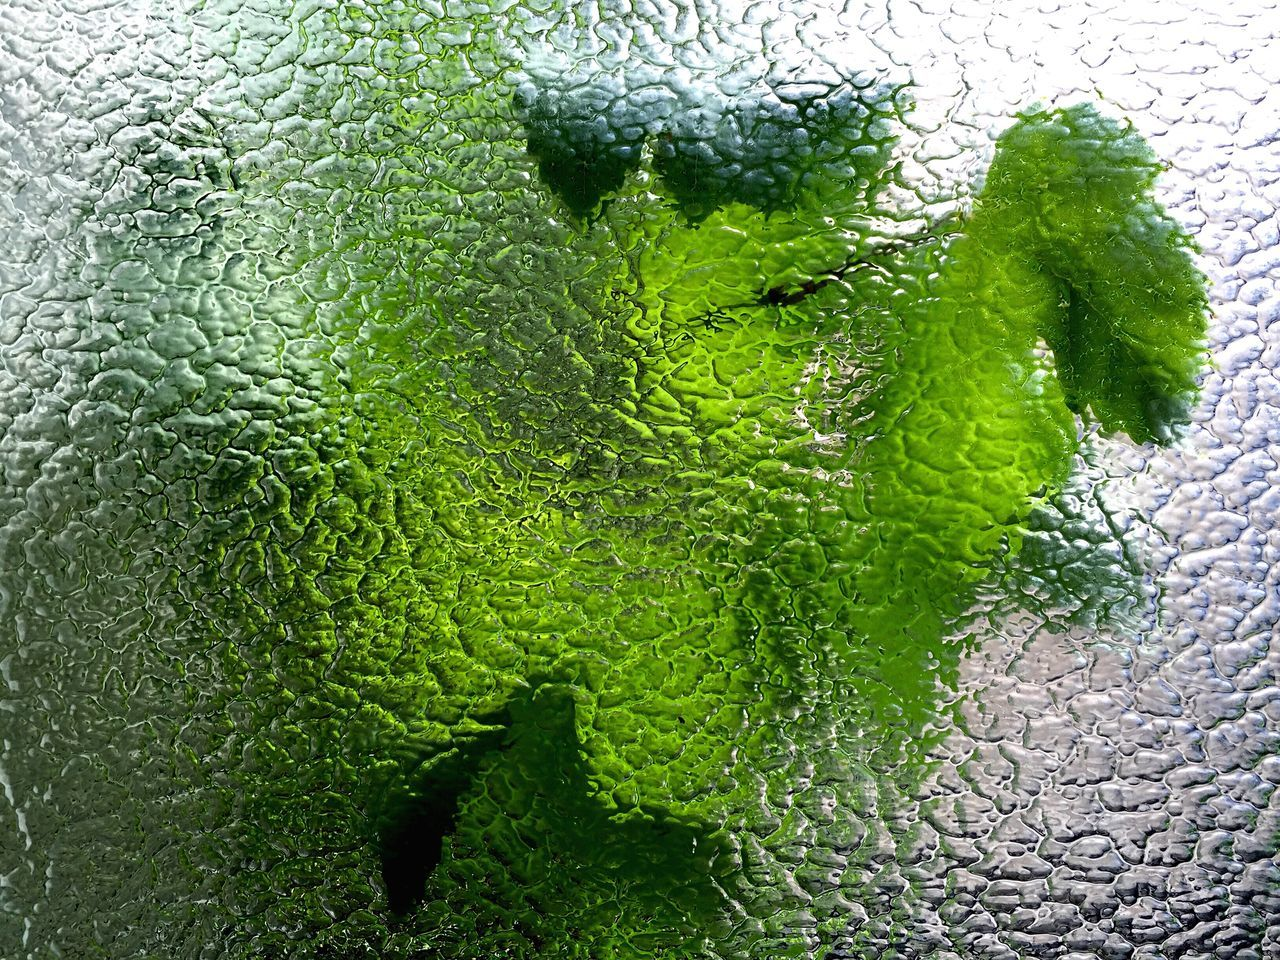 Green Leaves Seen Through Glass Window